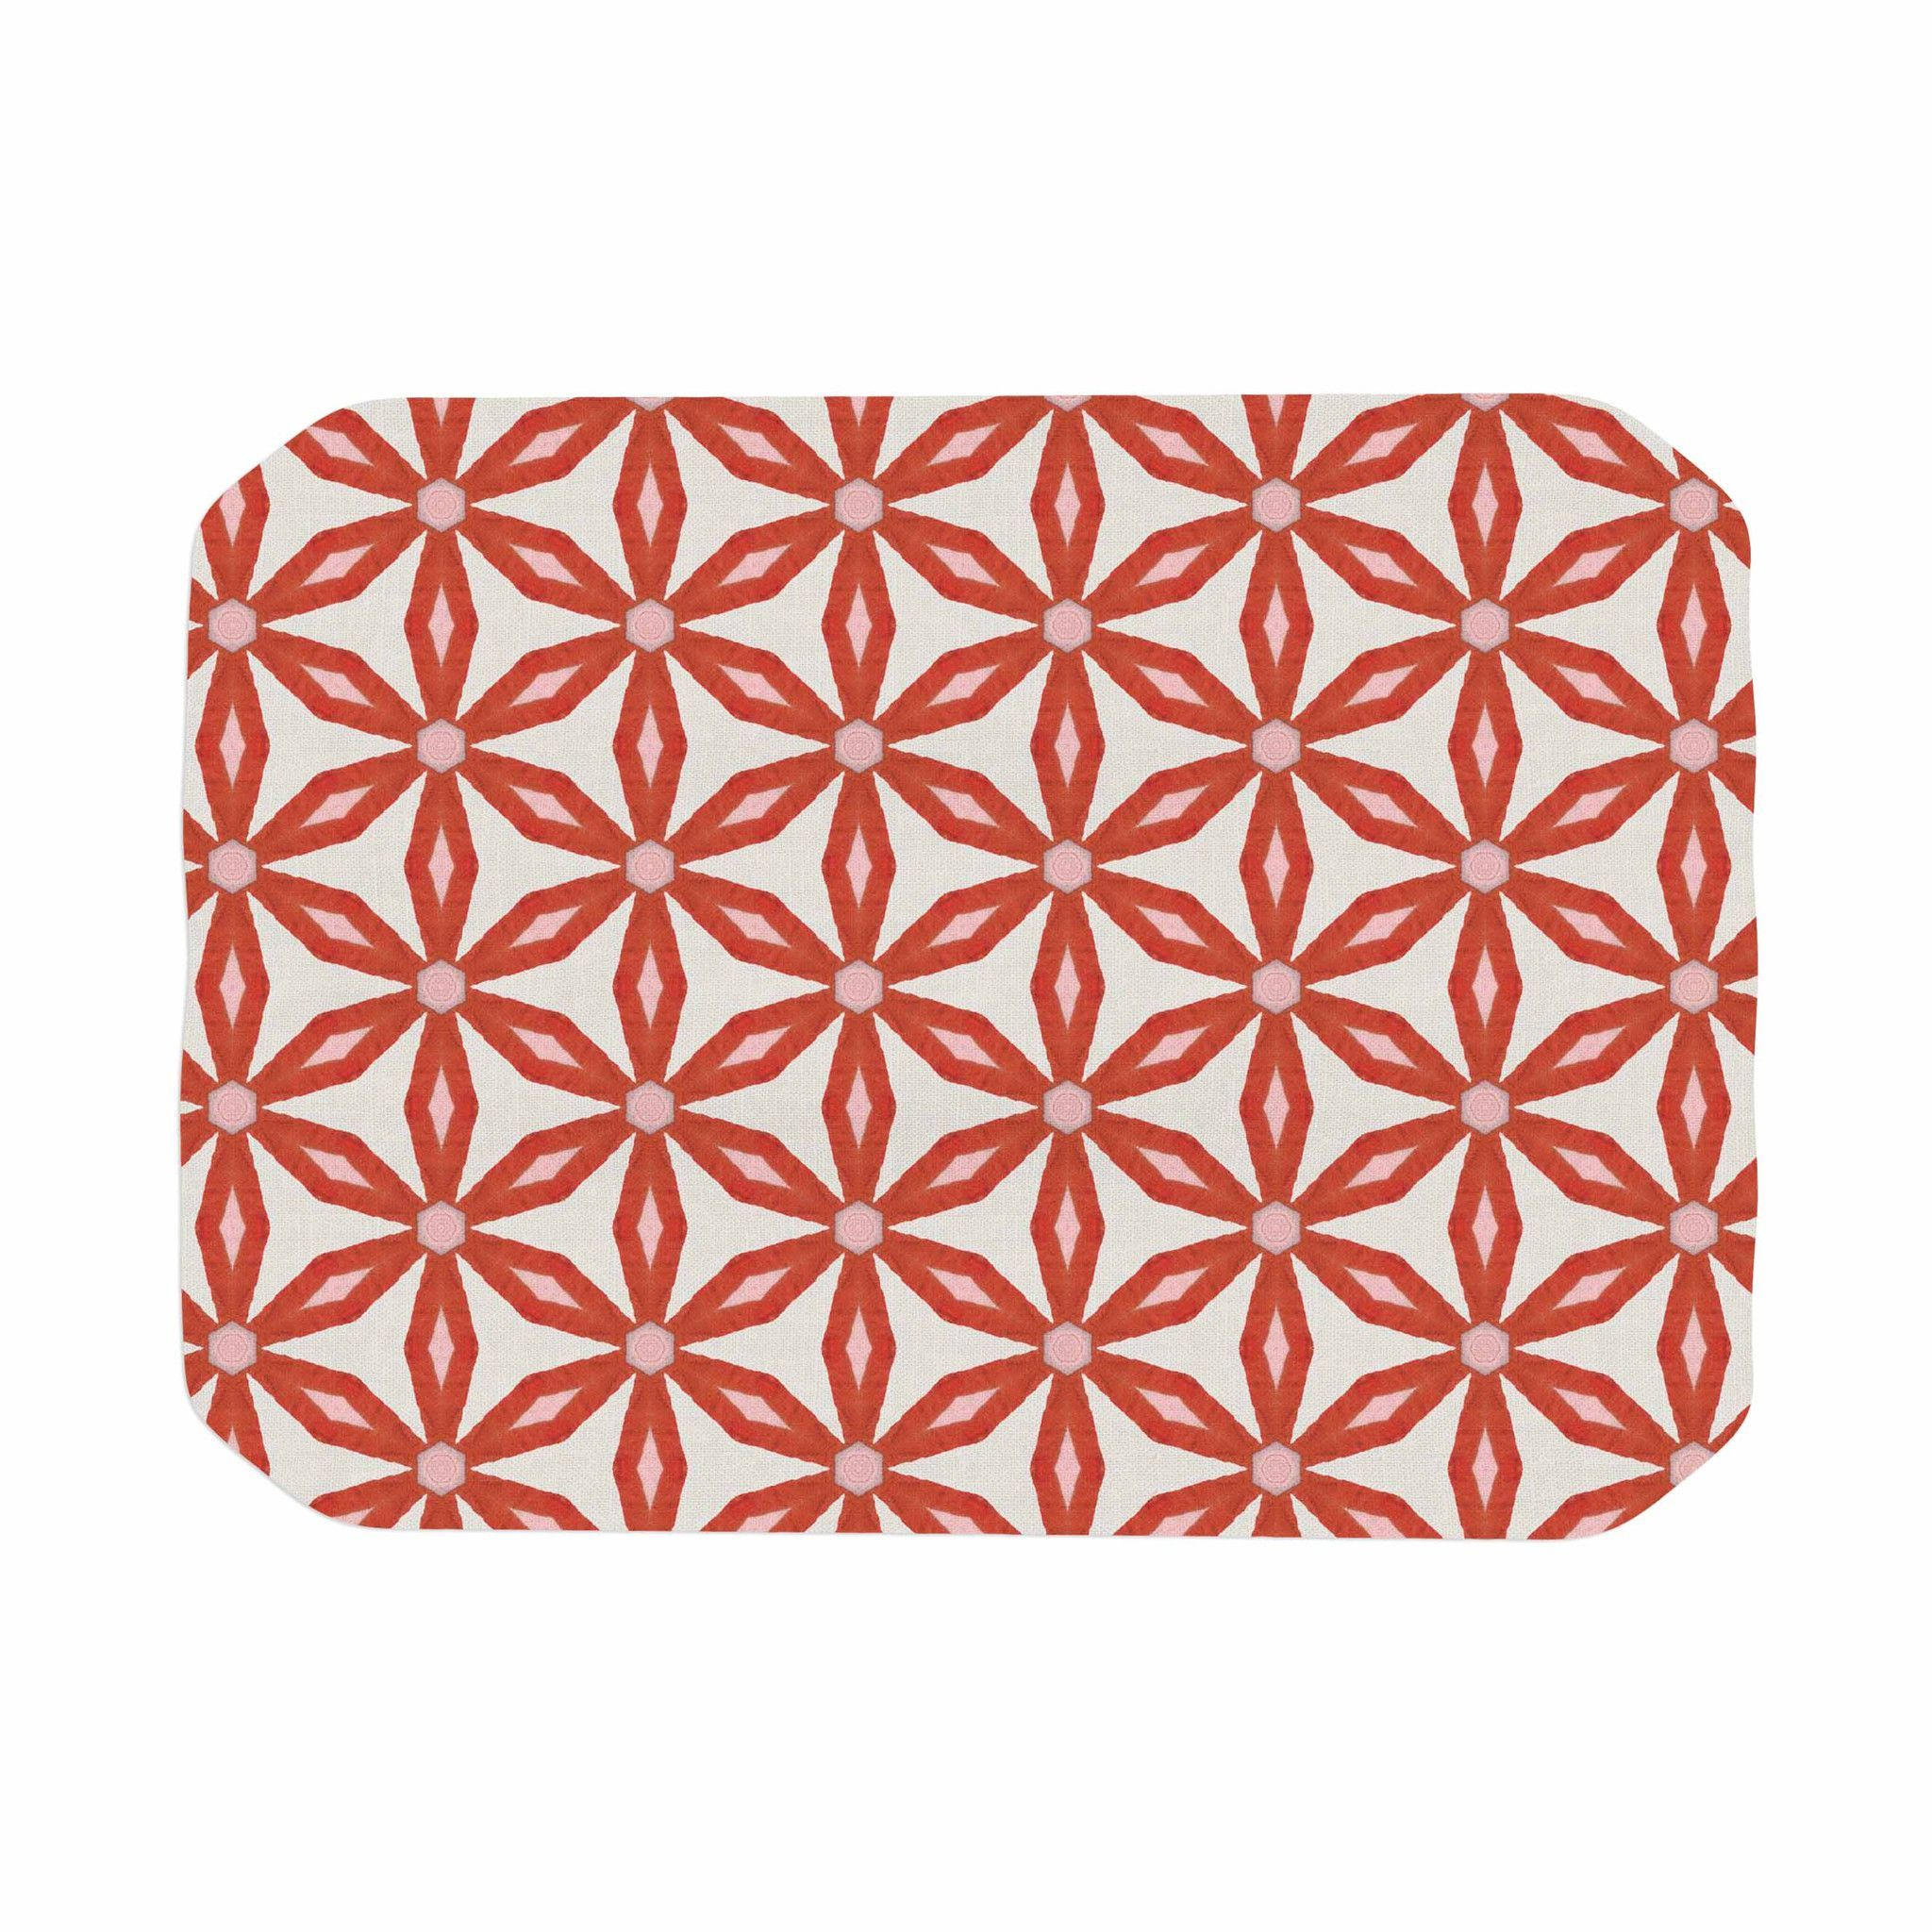 "Nic Squirrell ""Stars In Circles"" Red Beige Place Mat"